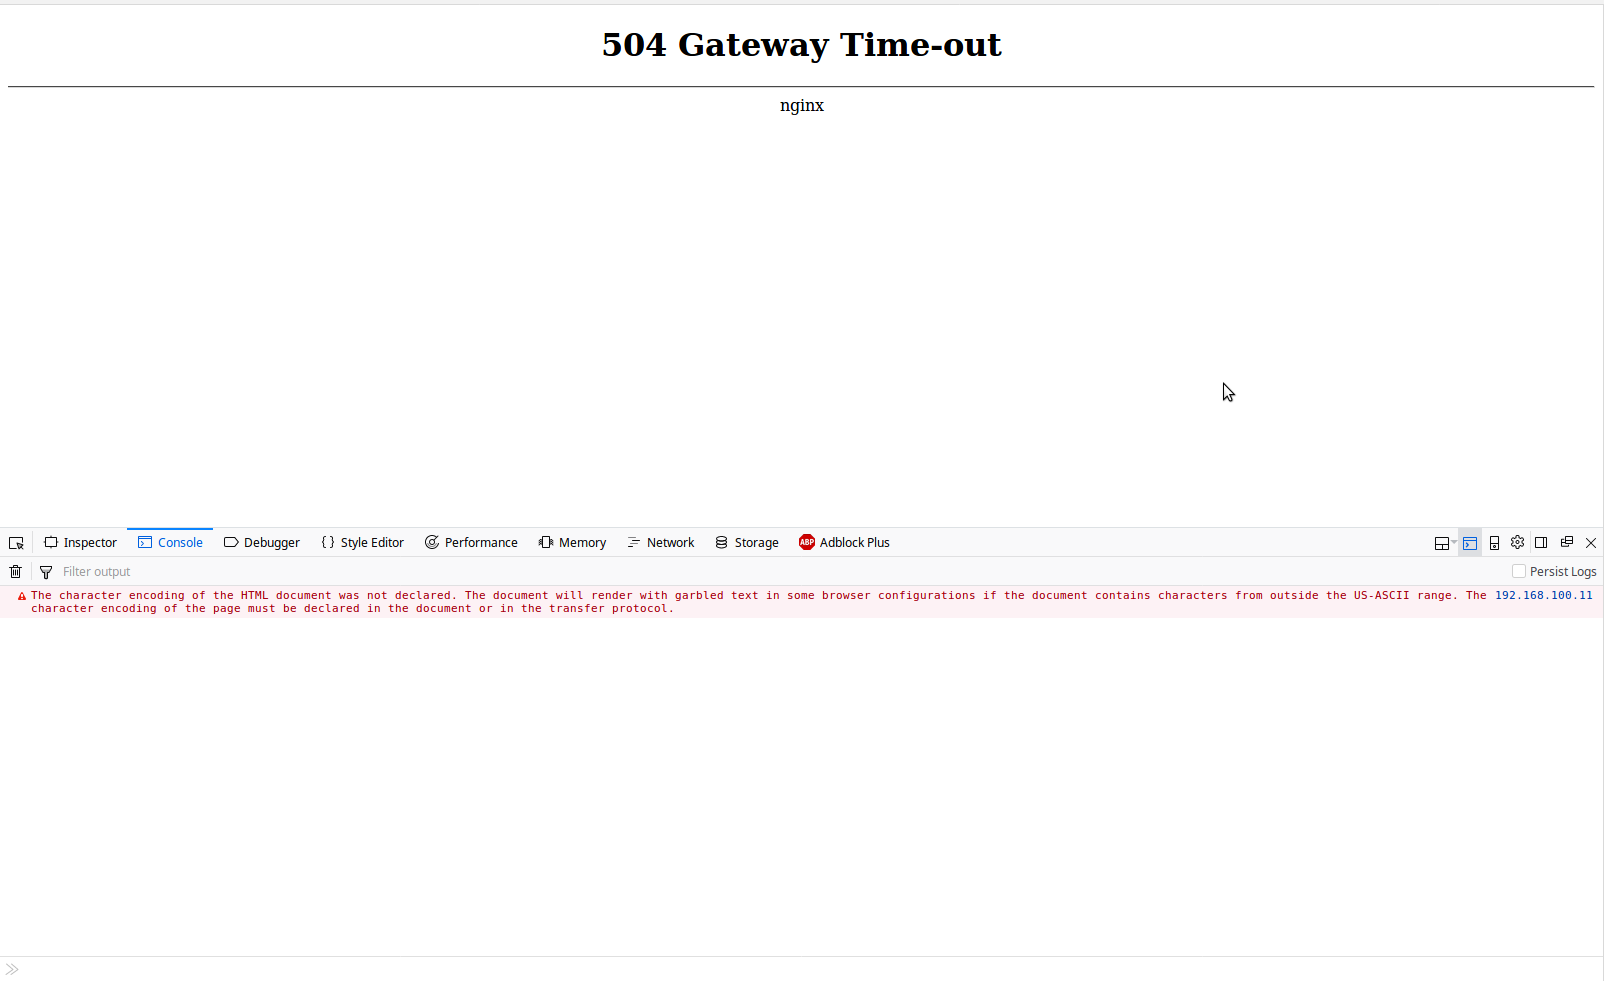 WebUI - 504 Gateway Time-out · Issue #70 · openmediavault